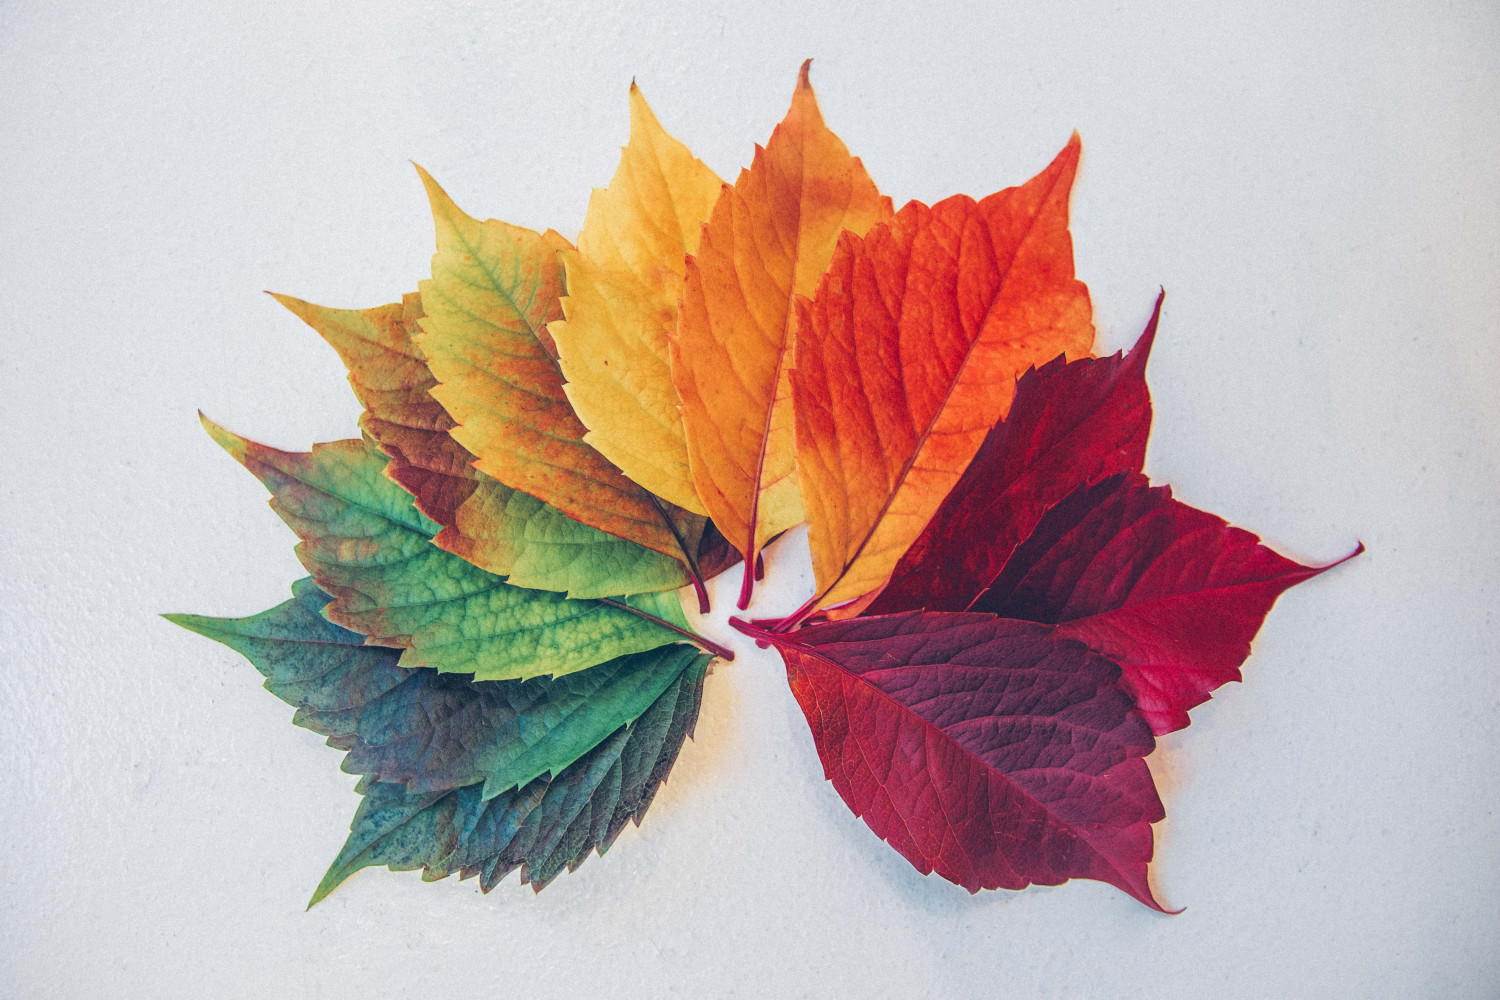 Image of a group of leaves in various colours